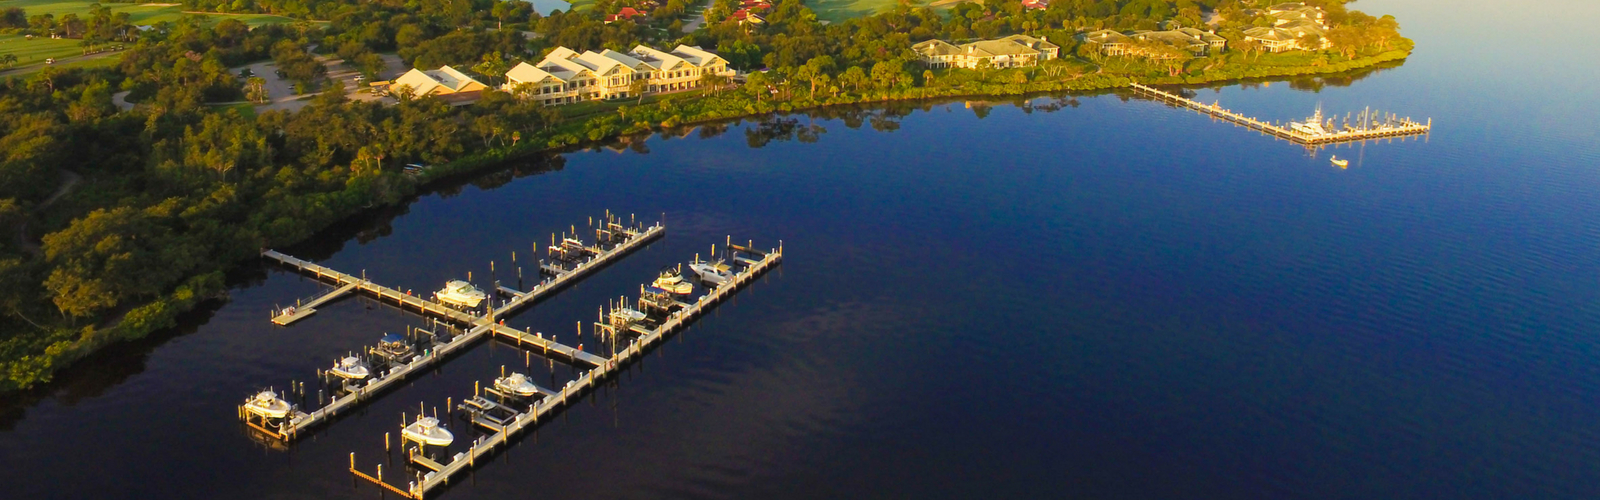 What Makes This the Most Unique Golf & Yacht Club in Florida?